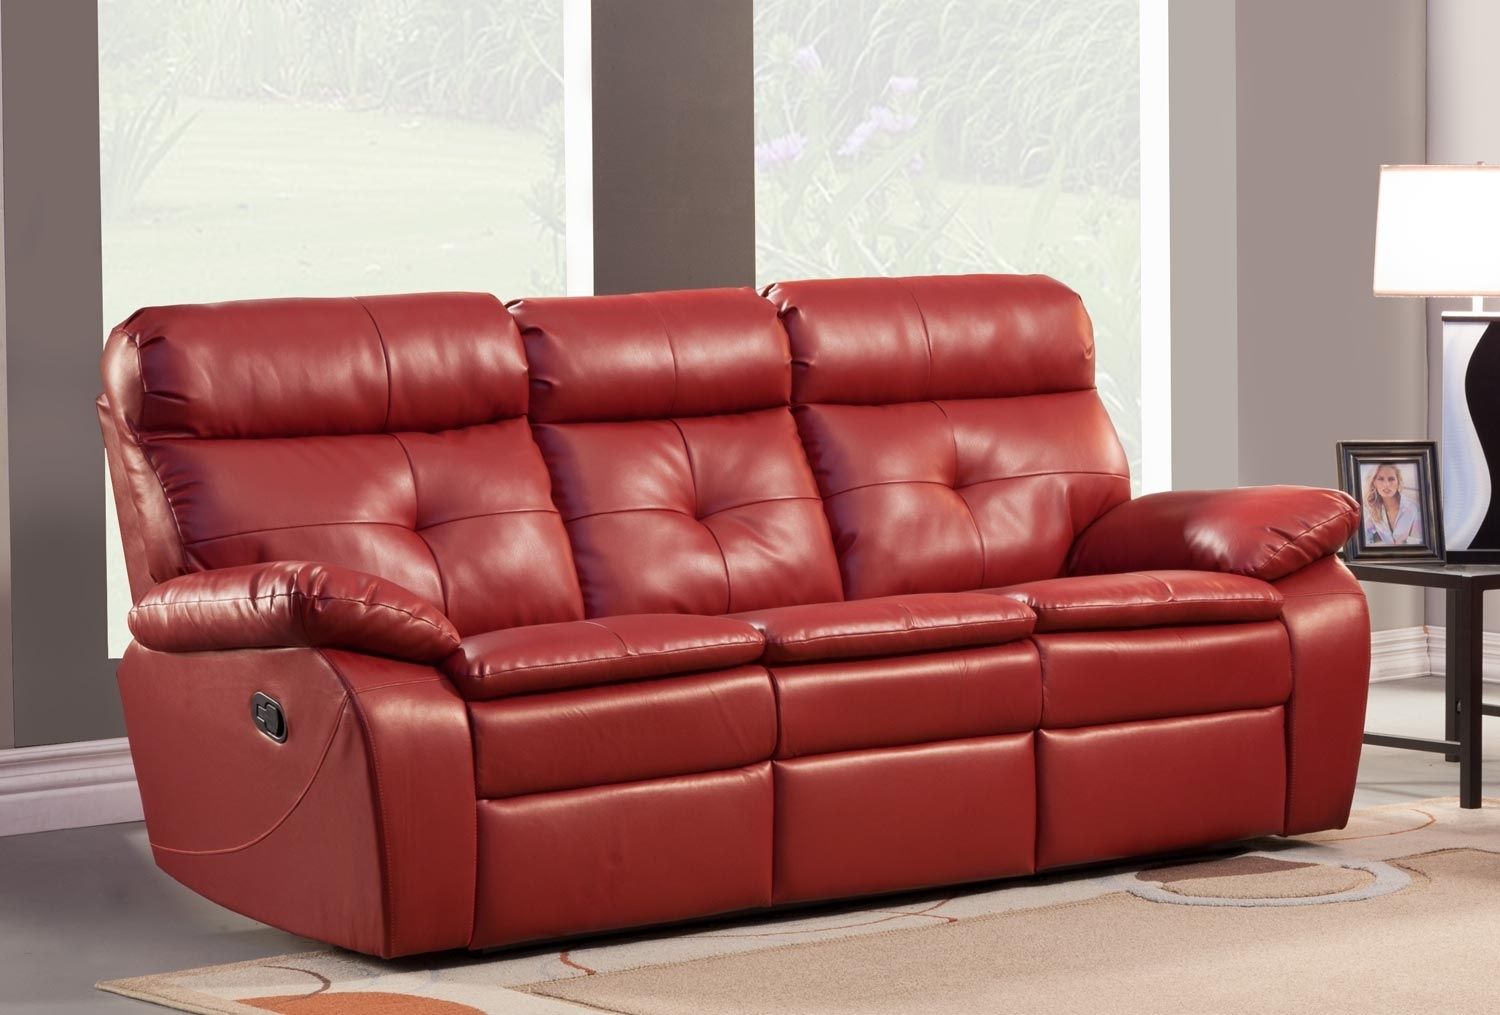 Good Red Leather Reclining Sofa And Loveseat 39 On Sofas And Couches In Red Leather Reclining Sofas And Loveseats (Image 2 of 10)